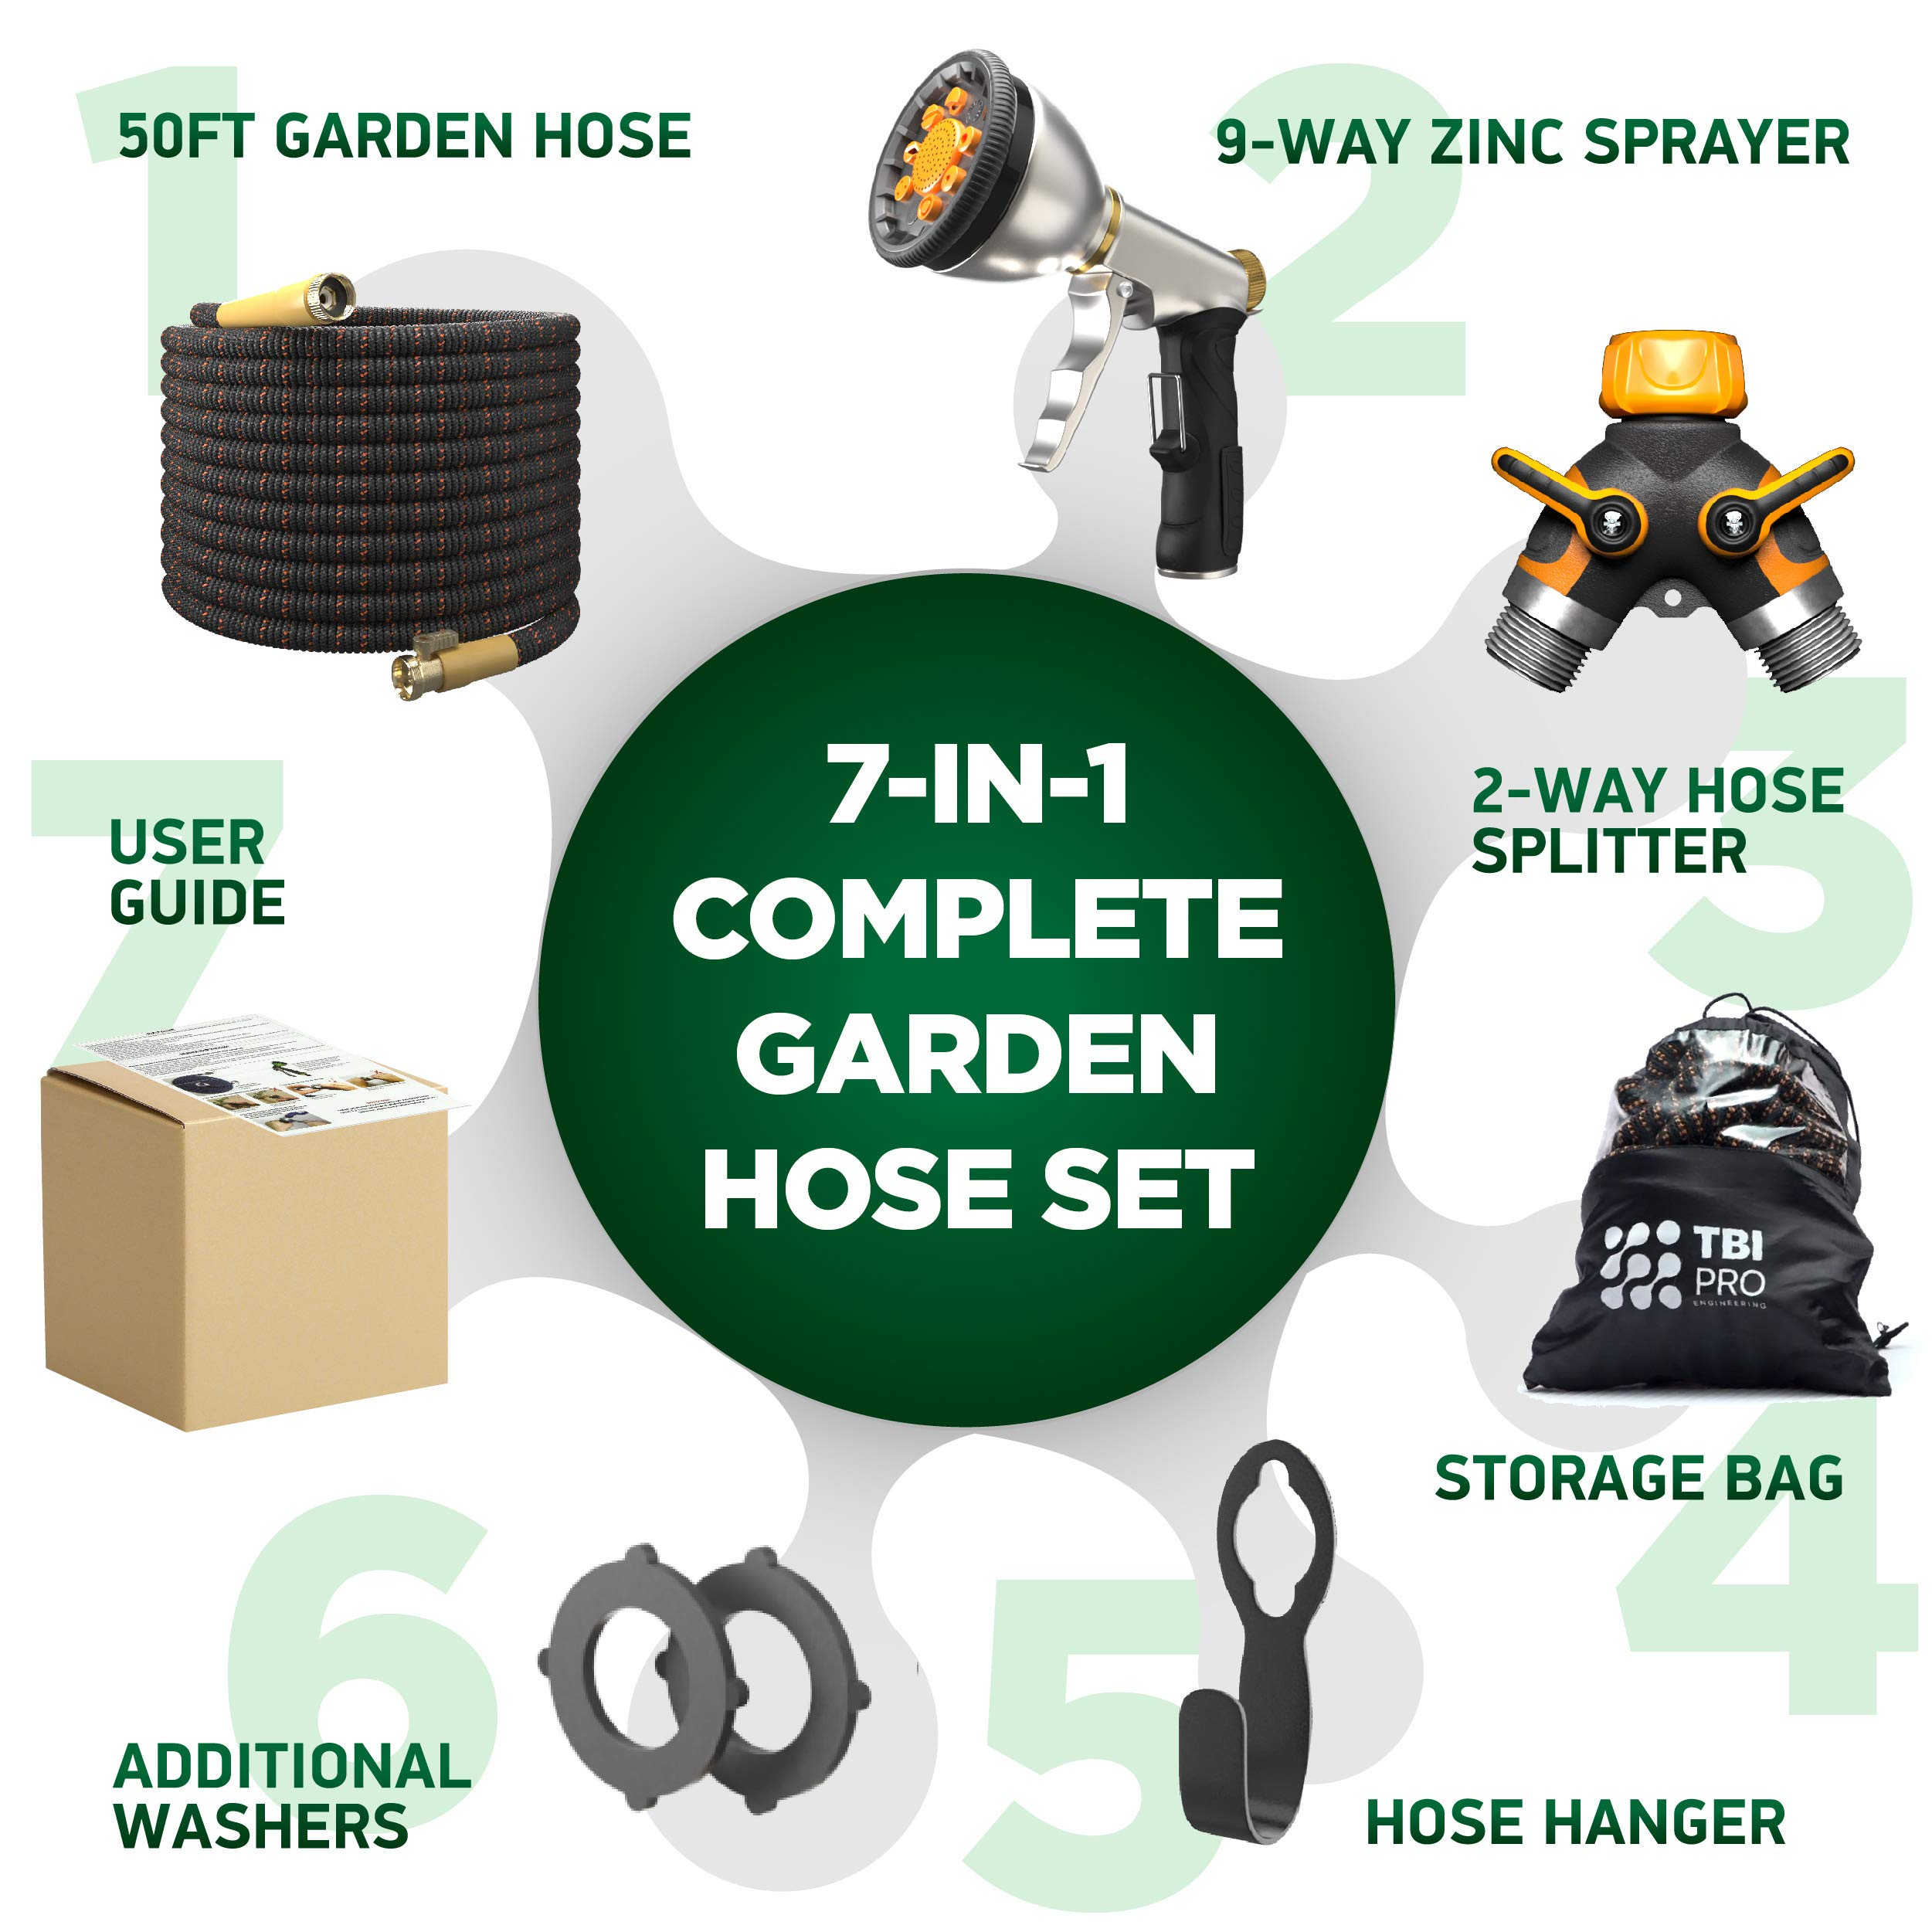 [UPGRADED 2019] 50 Feet Expandable Garden Water Hose - Superior Strength 3750D | 4-Layers Latex | Extra-Strong Brass Connectors | 10-Way Durable Zinc Spray Nozzle, 2-Way Pocket Flexible Splitter by TBI Pro (Image #7)